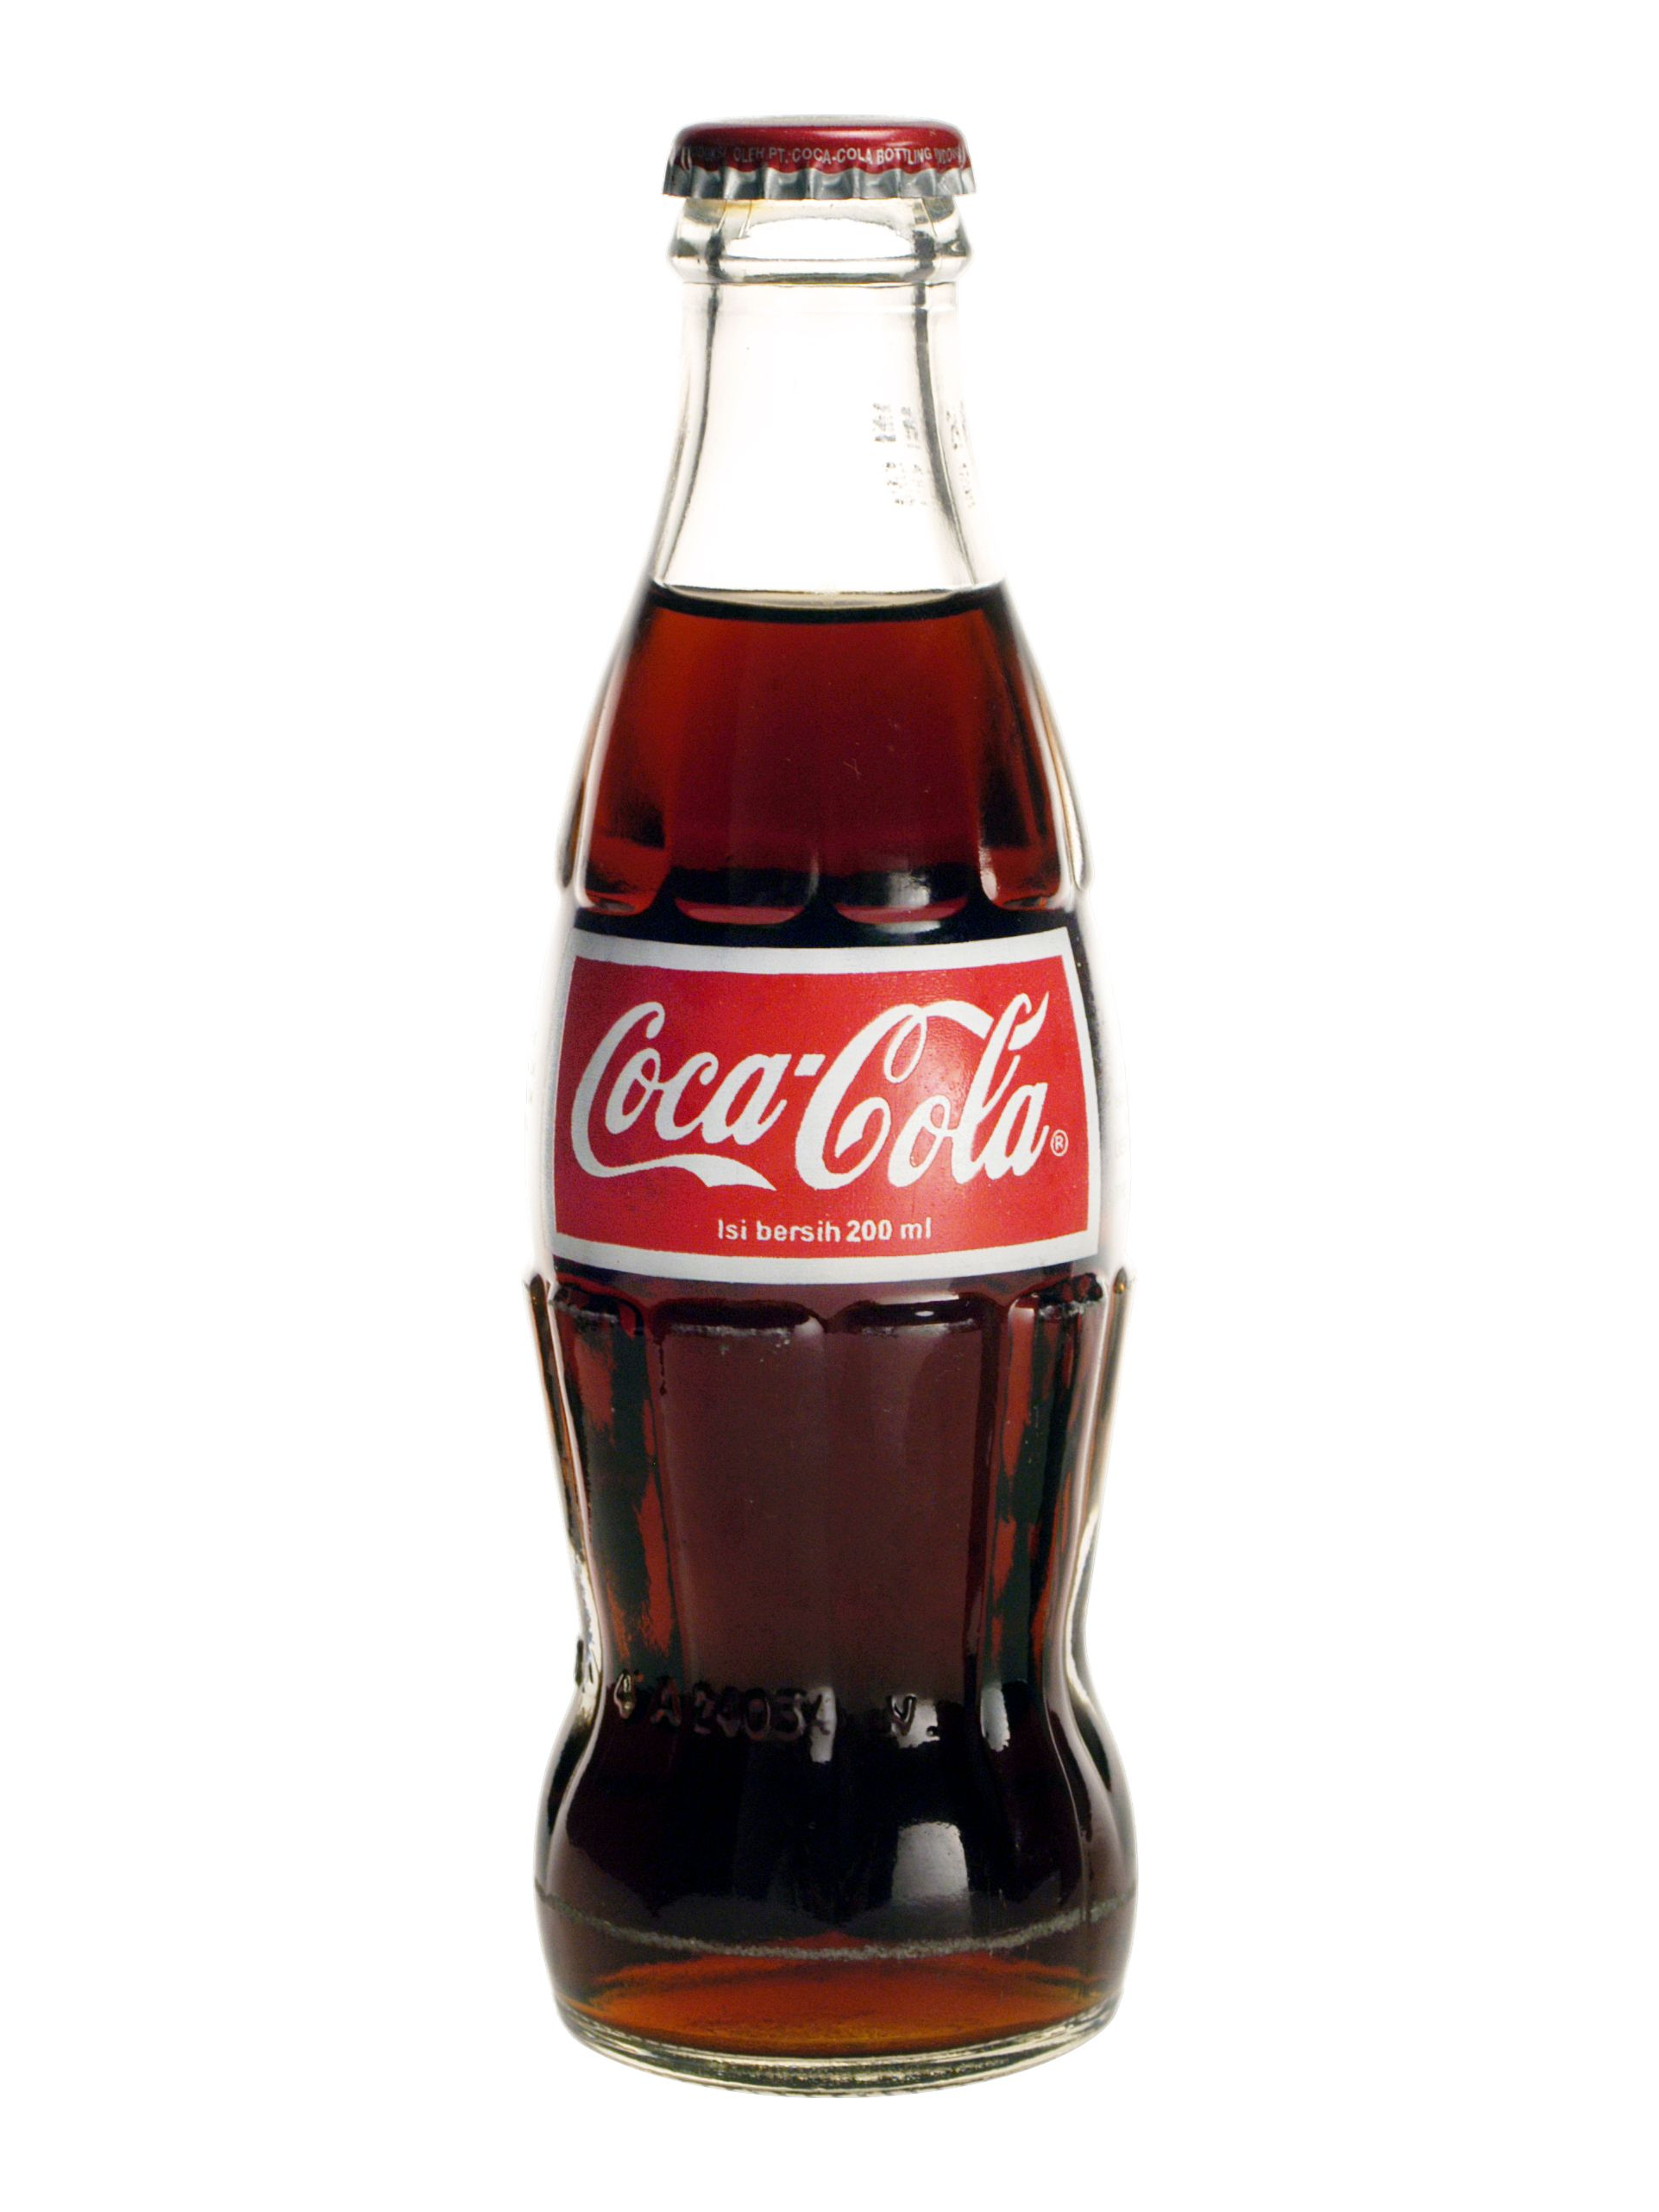 Have a Coke and a smile.